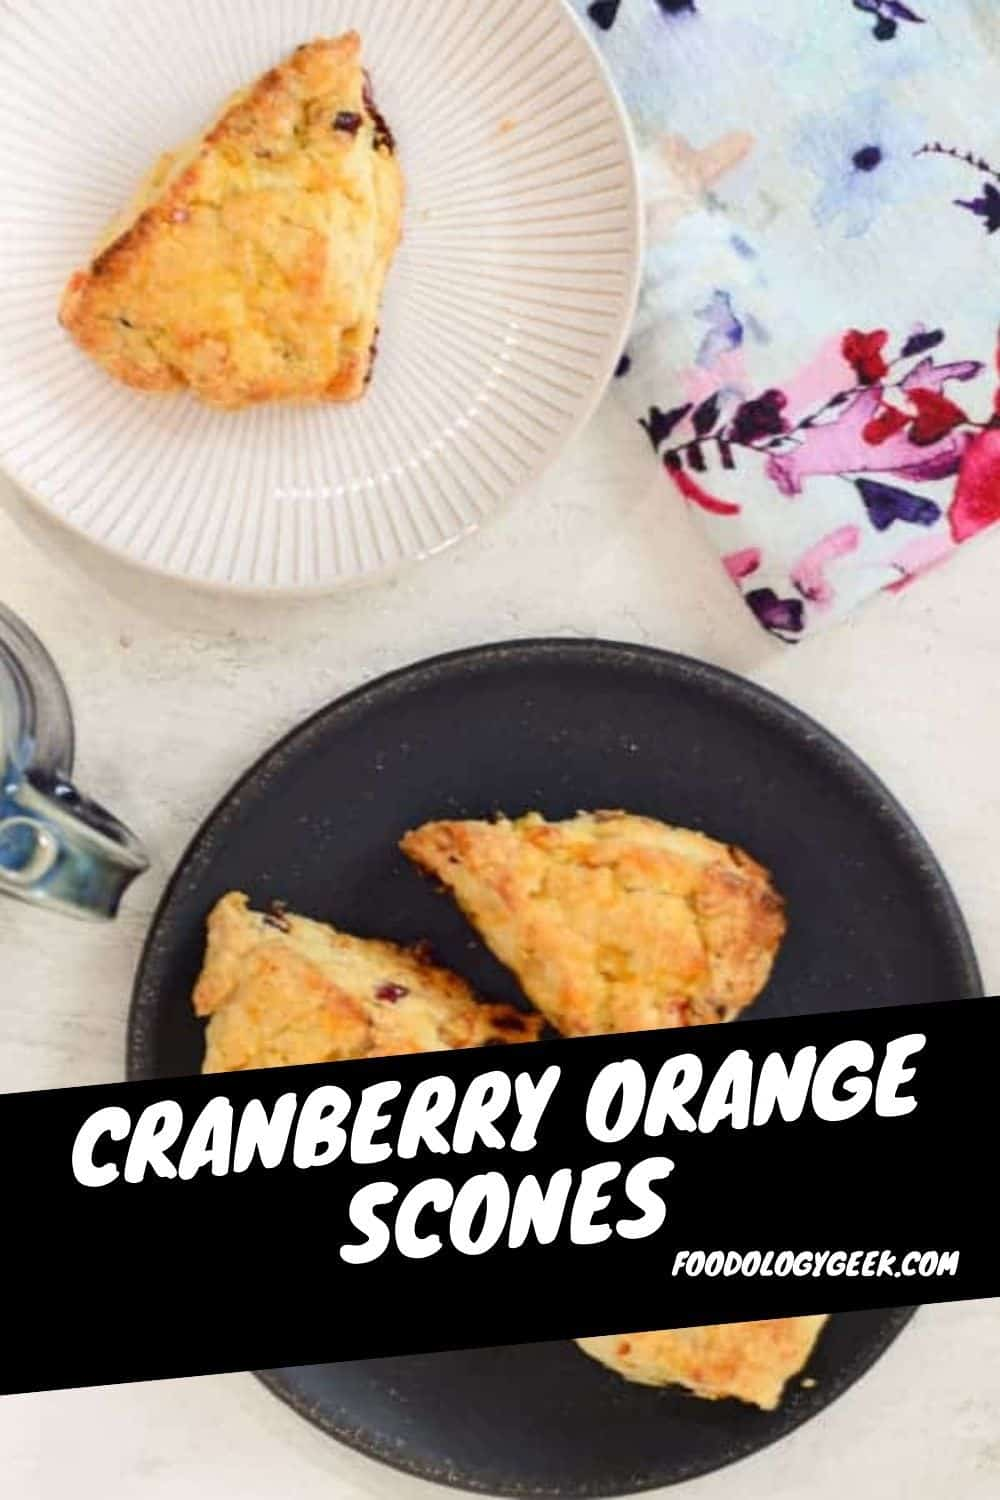 These glazed scones are buttery and flaky with a burst of cranberry and orange flavor. This recipe is completely fail-proof. I promise you will get perfect scones every single time.